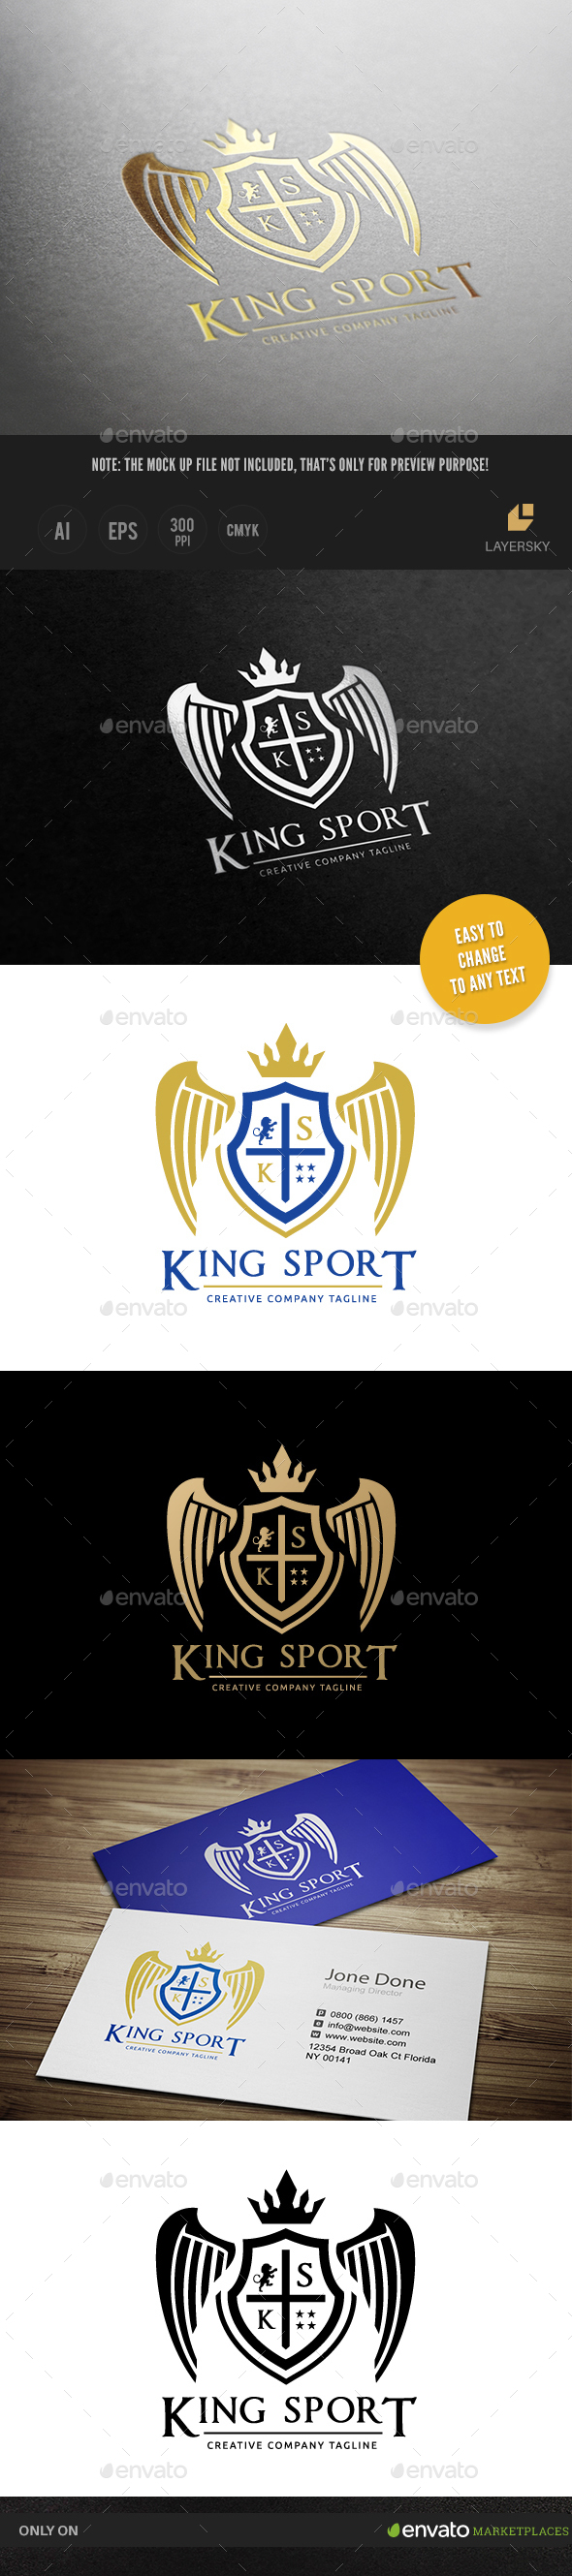 King Sport Logo - Crests Logo Templates